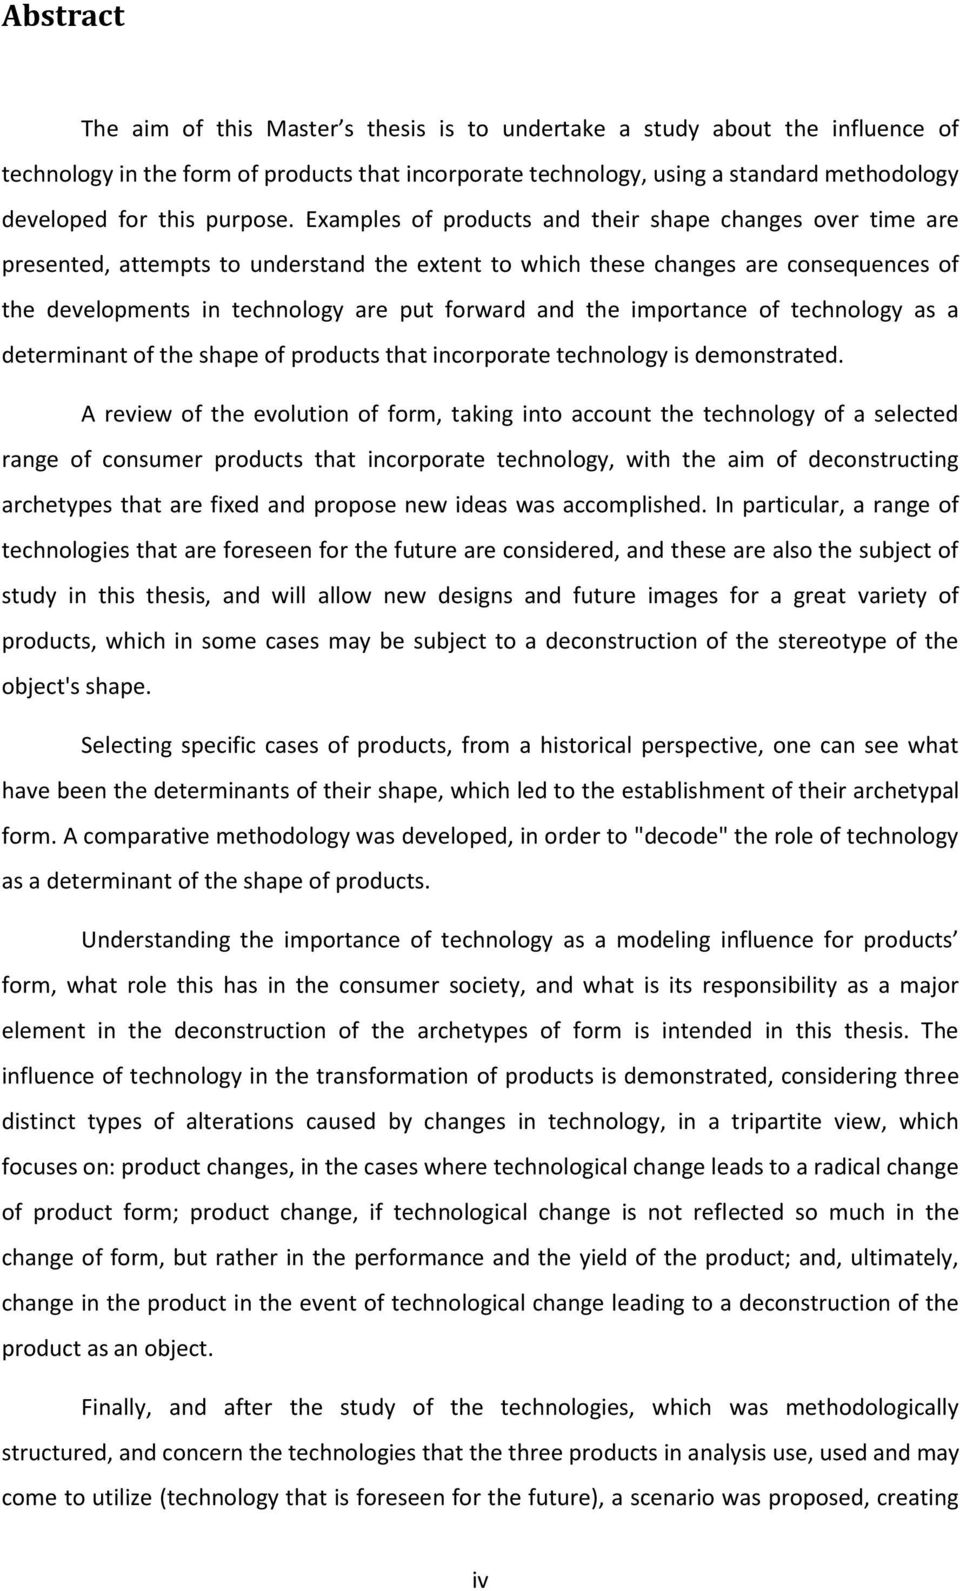 Examples of products and their shape changes over time are presented, attempts to understand the extent to which these changes are consequences of the developments in technology are put forward and